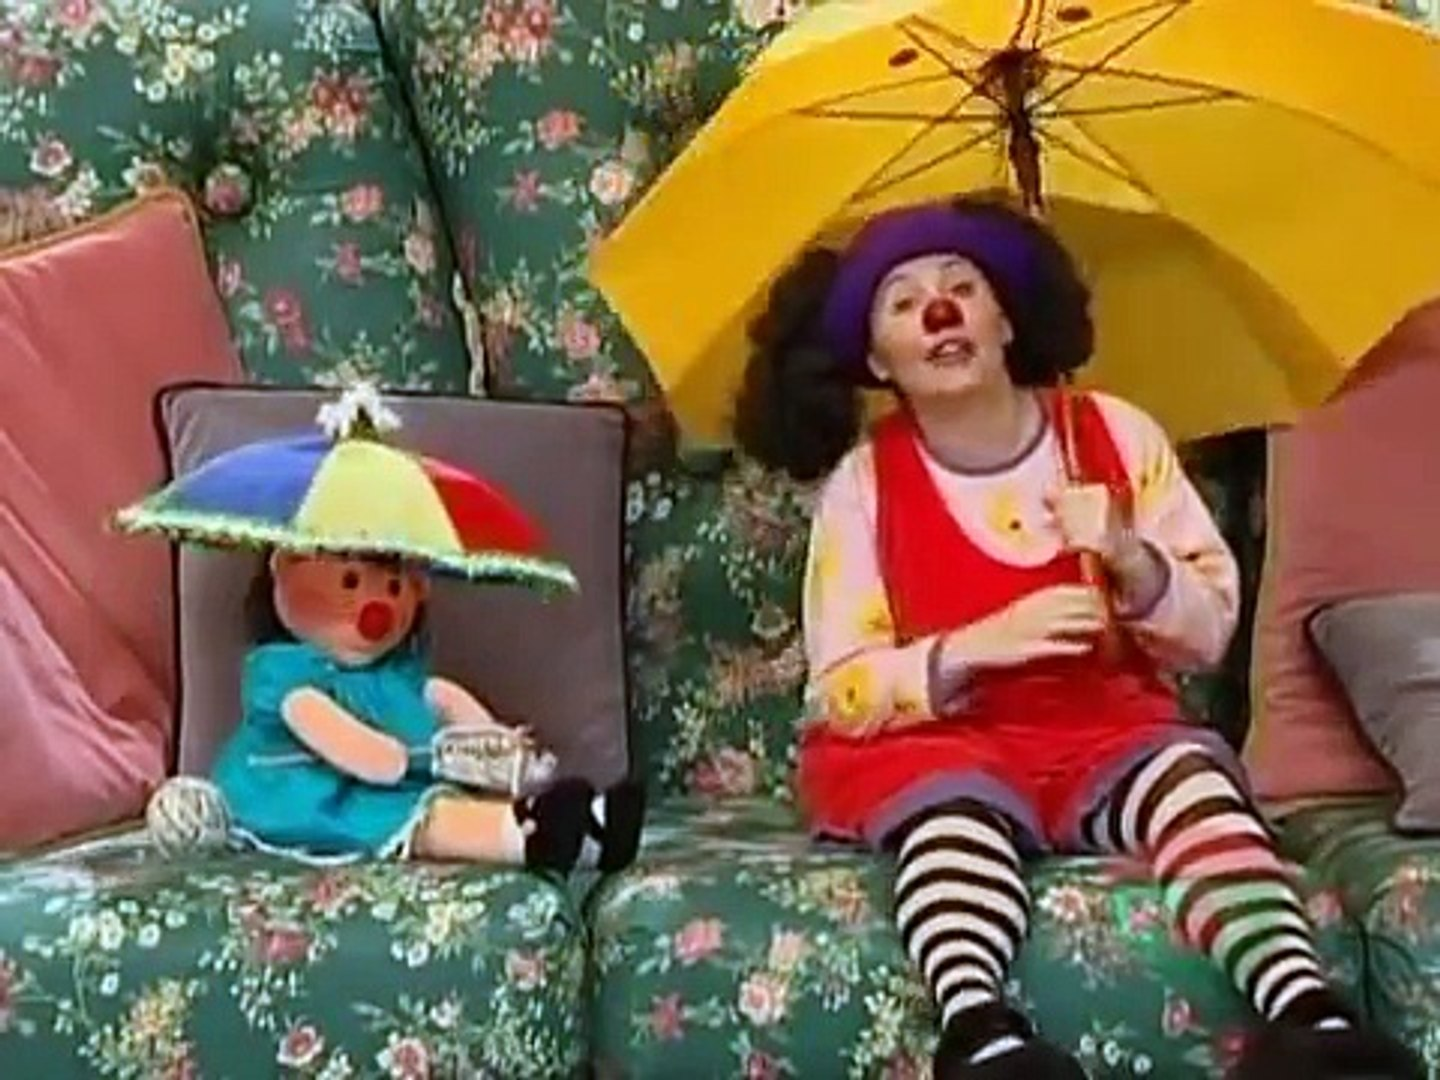 Big Couch Clown The Big Comfy Couch Clowning In The Rain